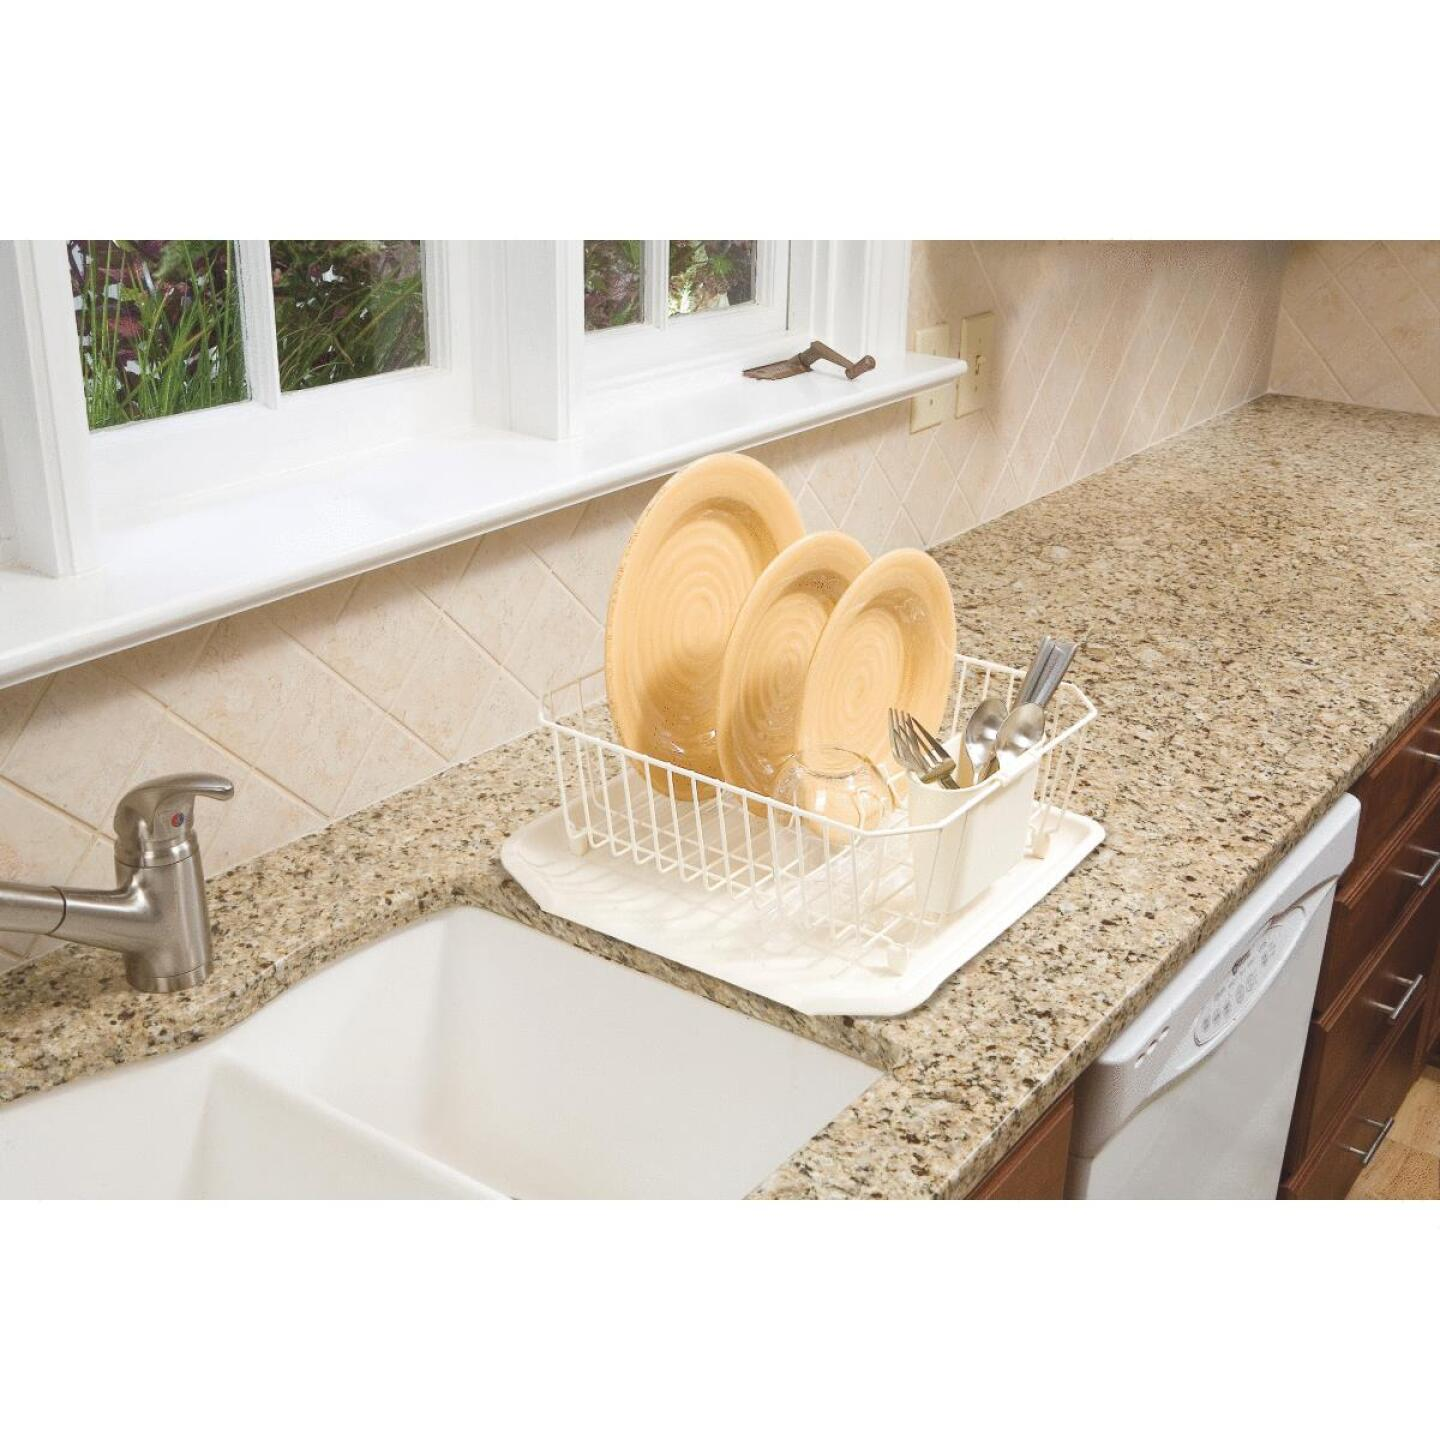 Rubbermaid 12.49 In. x 14.31 In. Bisque Wire Sink Dish Drainer Image 2